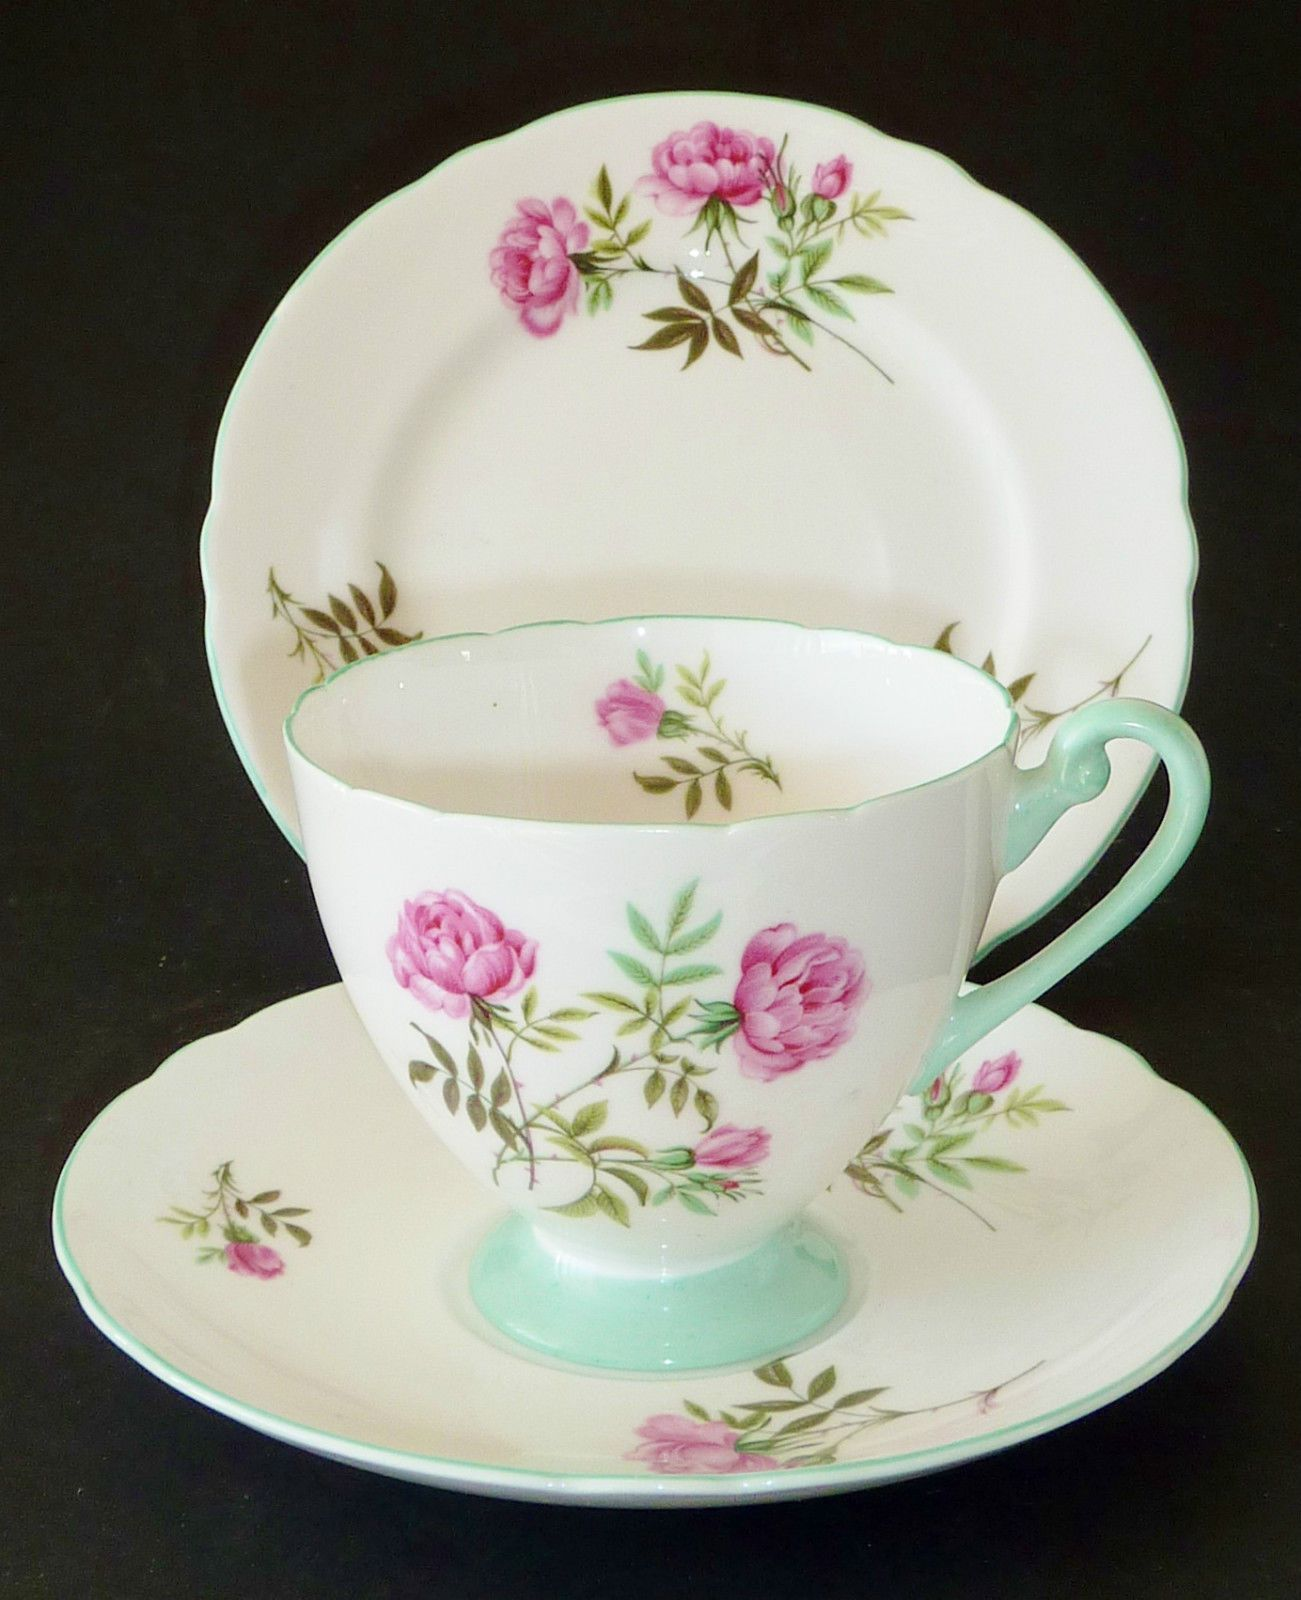 VINTAGE Shelley HIGH TEA EGLANTINE Rose TRIO cup saucer plate ENGLISH CHINA XC in Pottery, Glass, Pottery, Porcelain, Shelley | eBay